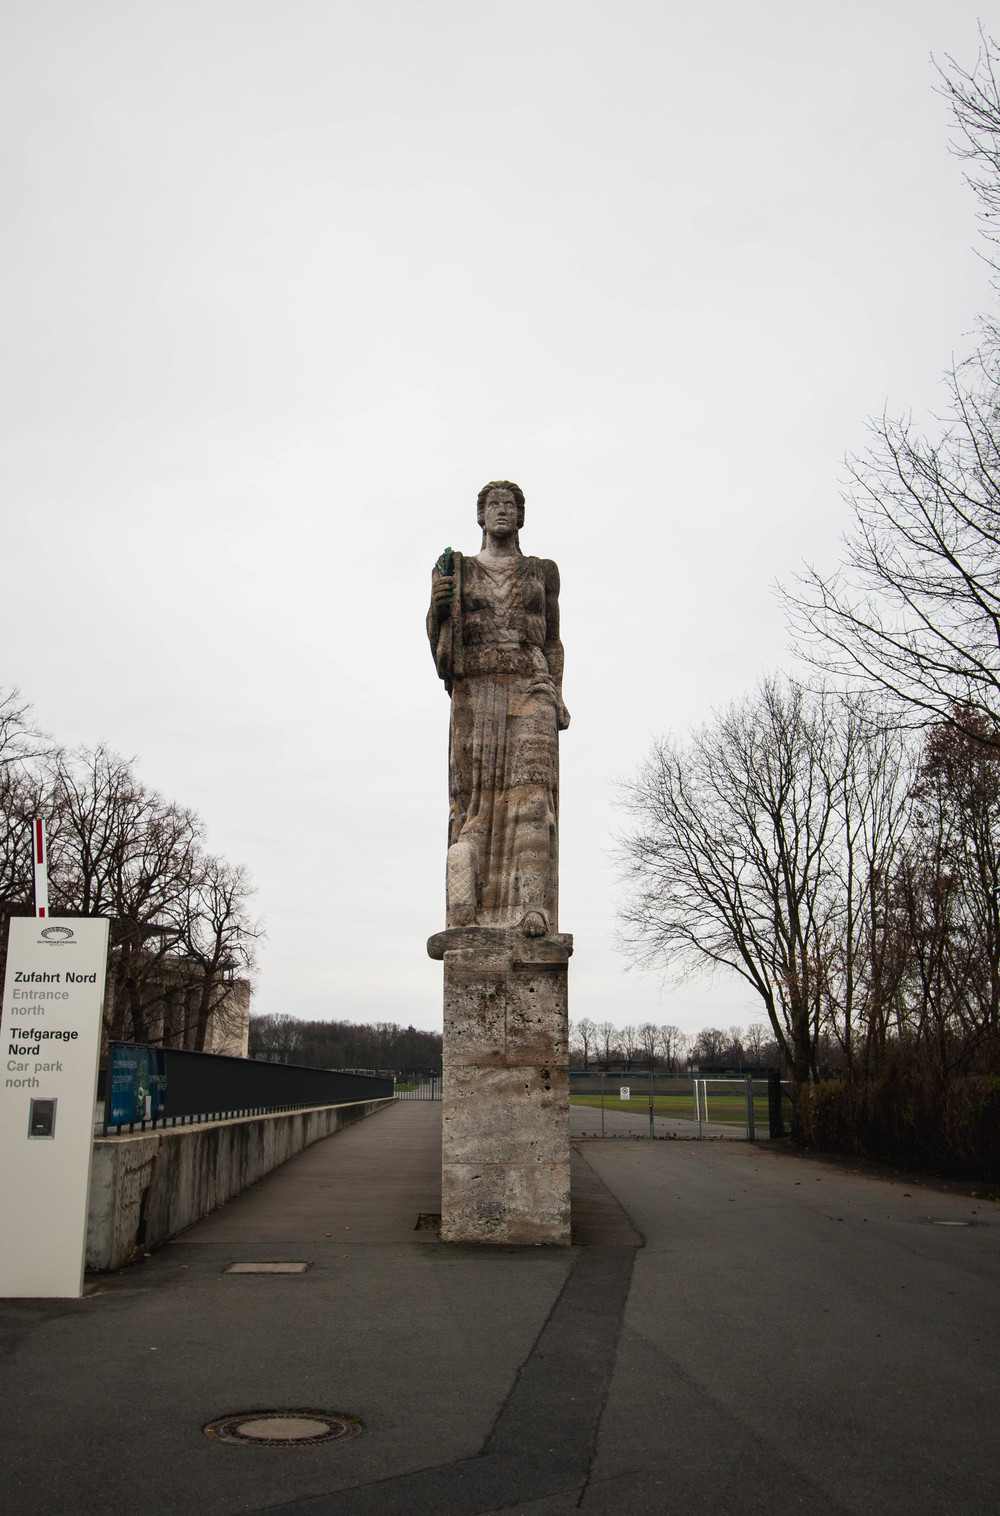 Statue - Berlin Olympic Stadium, Berlin, Germany 04/12/2015